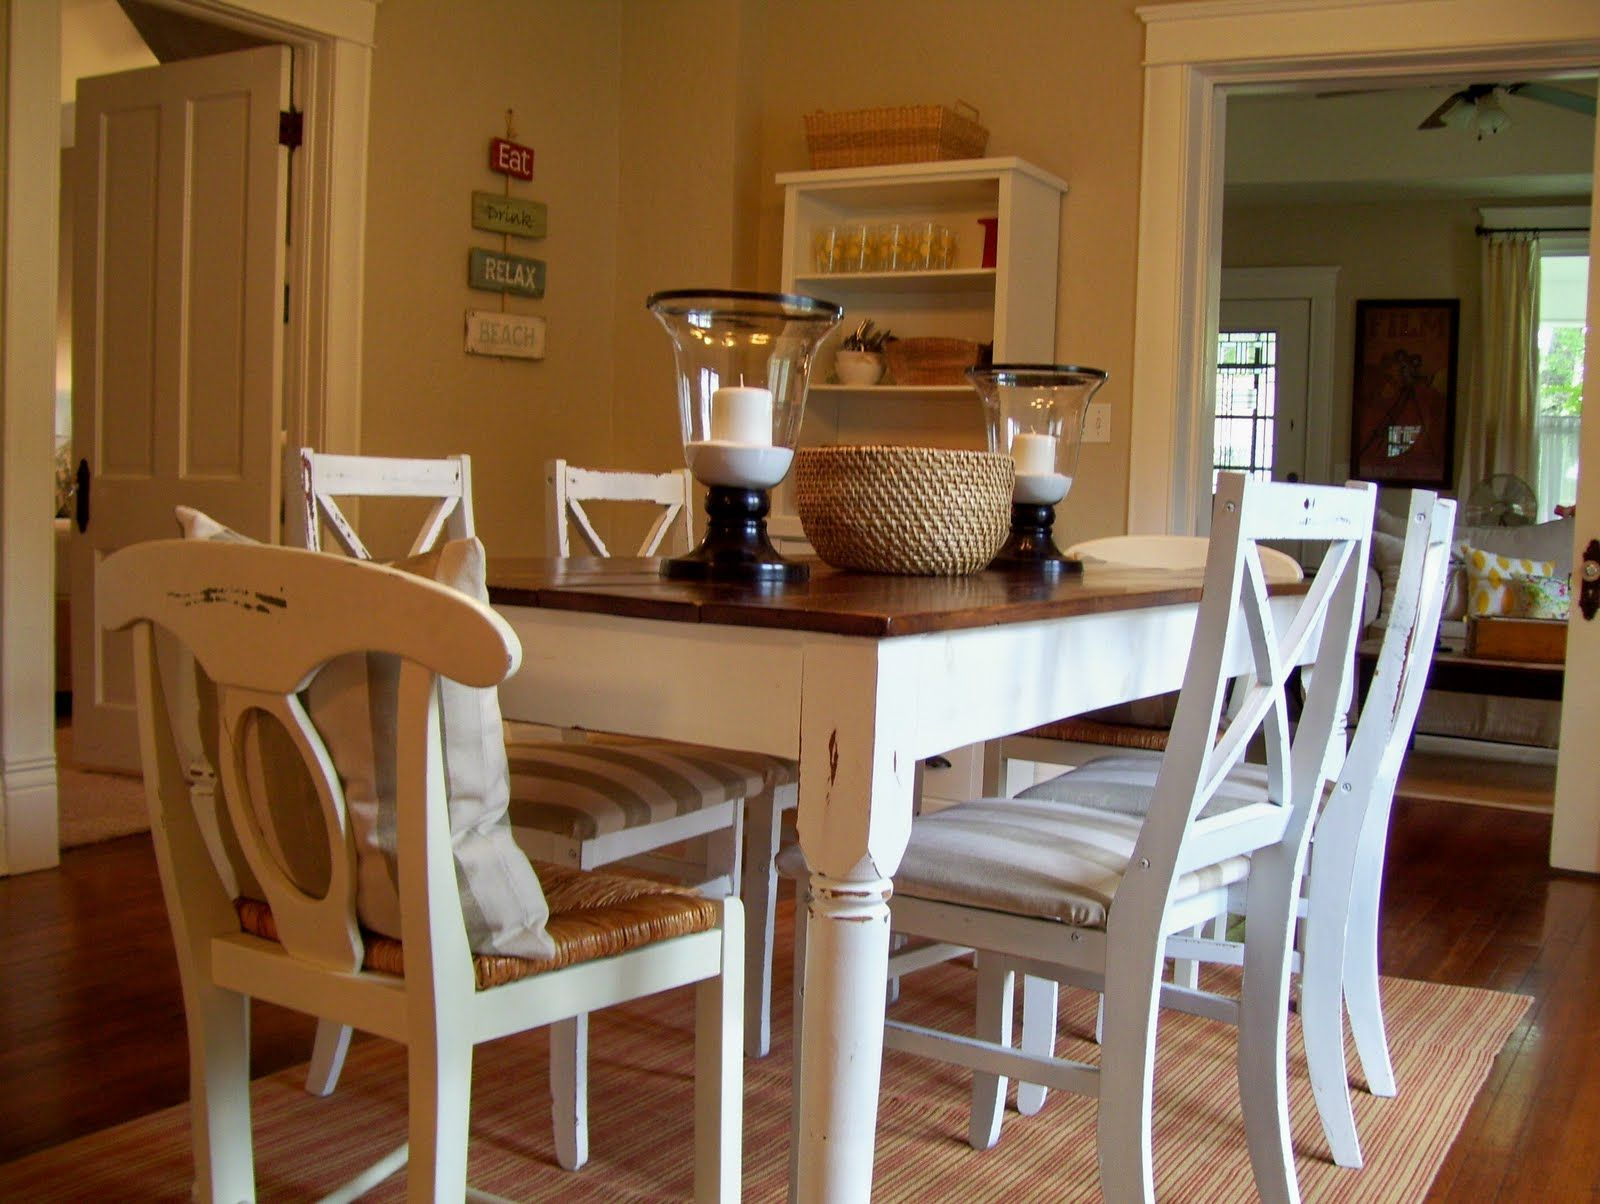 Colored Dining Room Sets 1000 Images About Dining Room Ideas On Pinterest Farmhouse